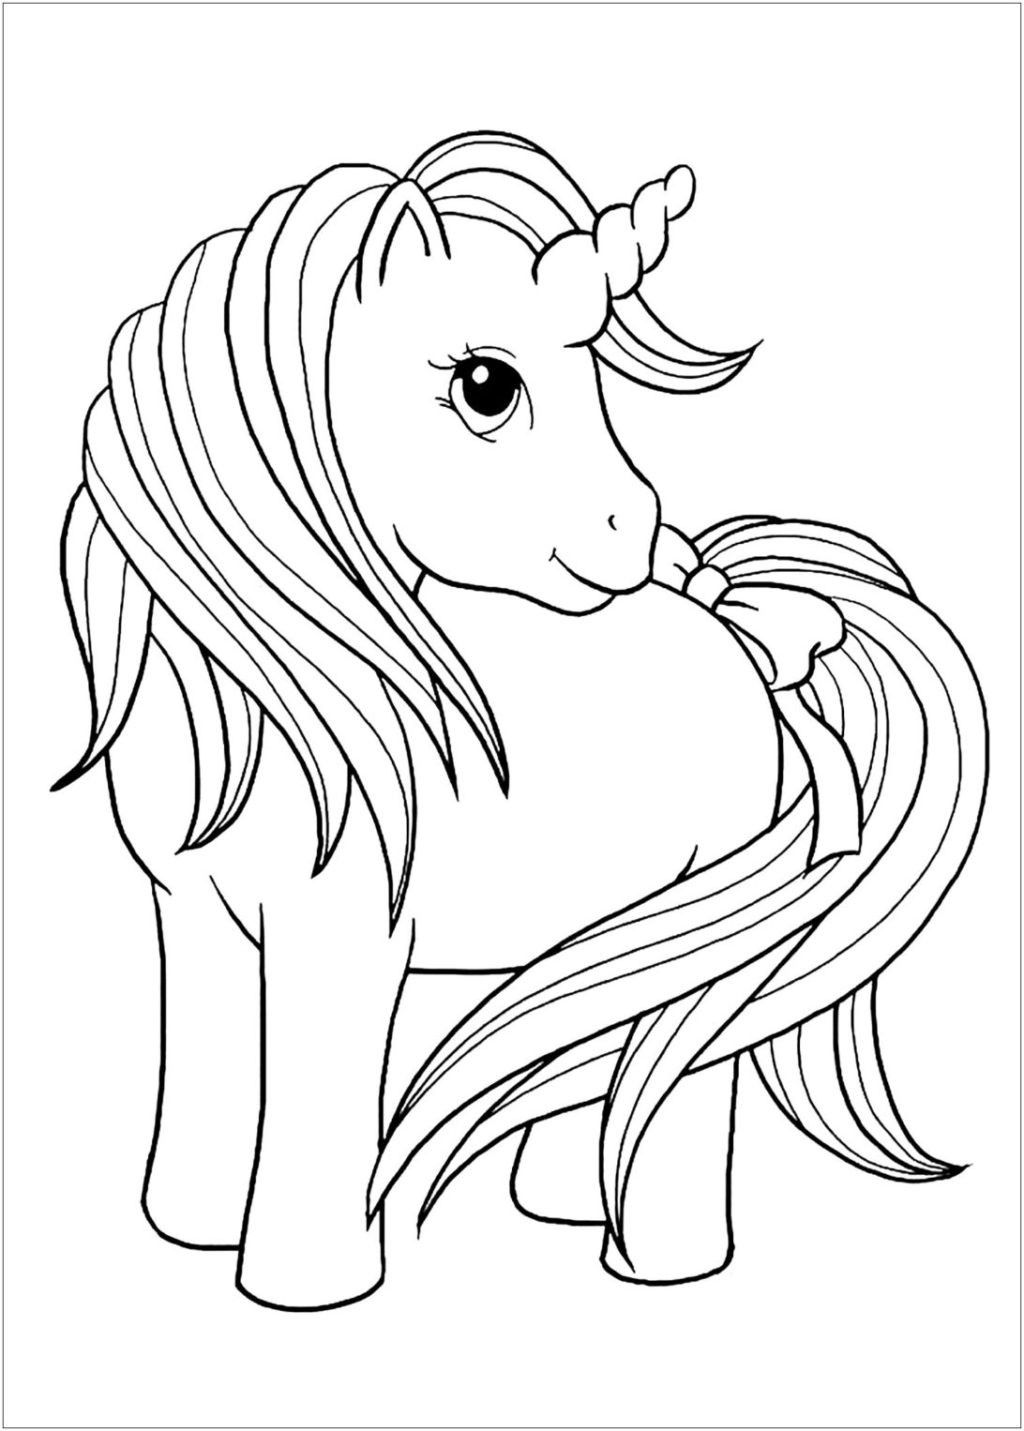 Paw Print Coloring Page Youngandtae Com In 2020 Horse Coloring Pages Cute Coloring Pages Animal Coloring Pages